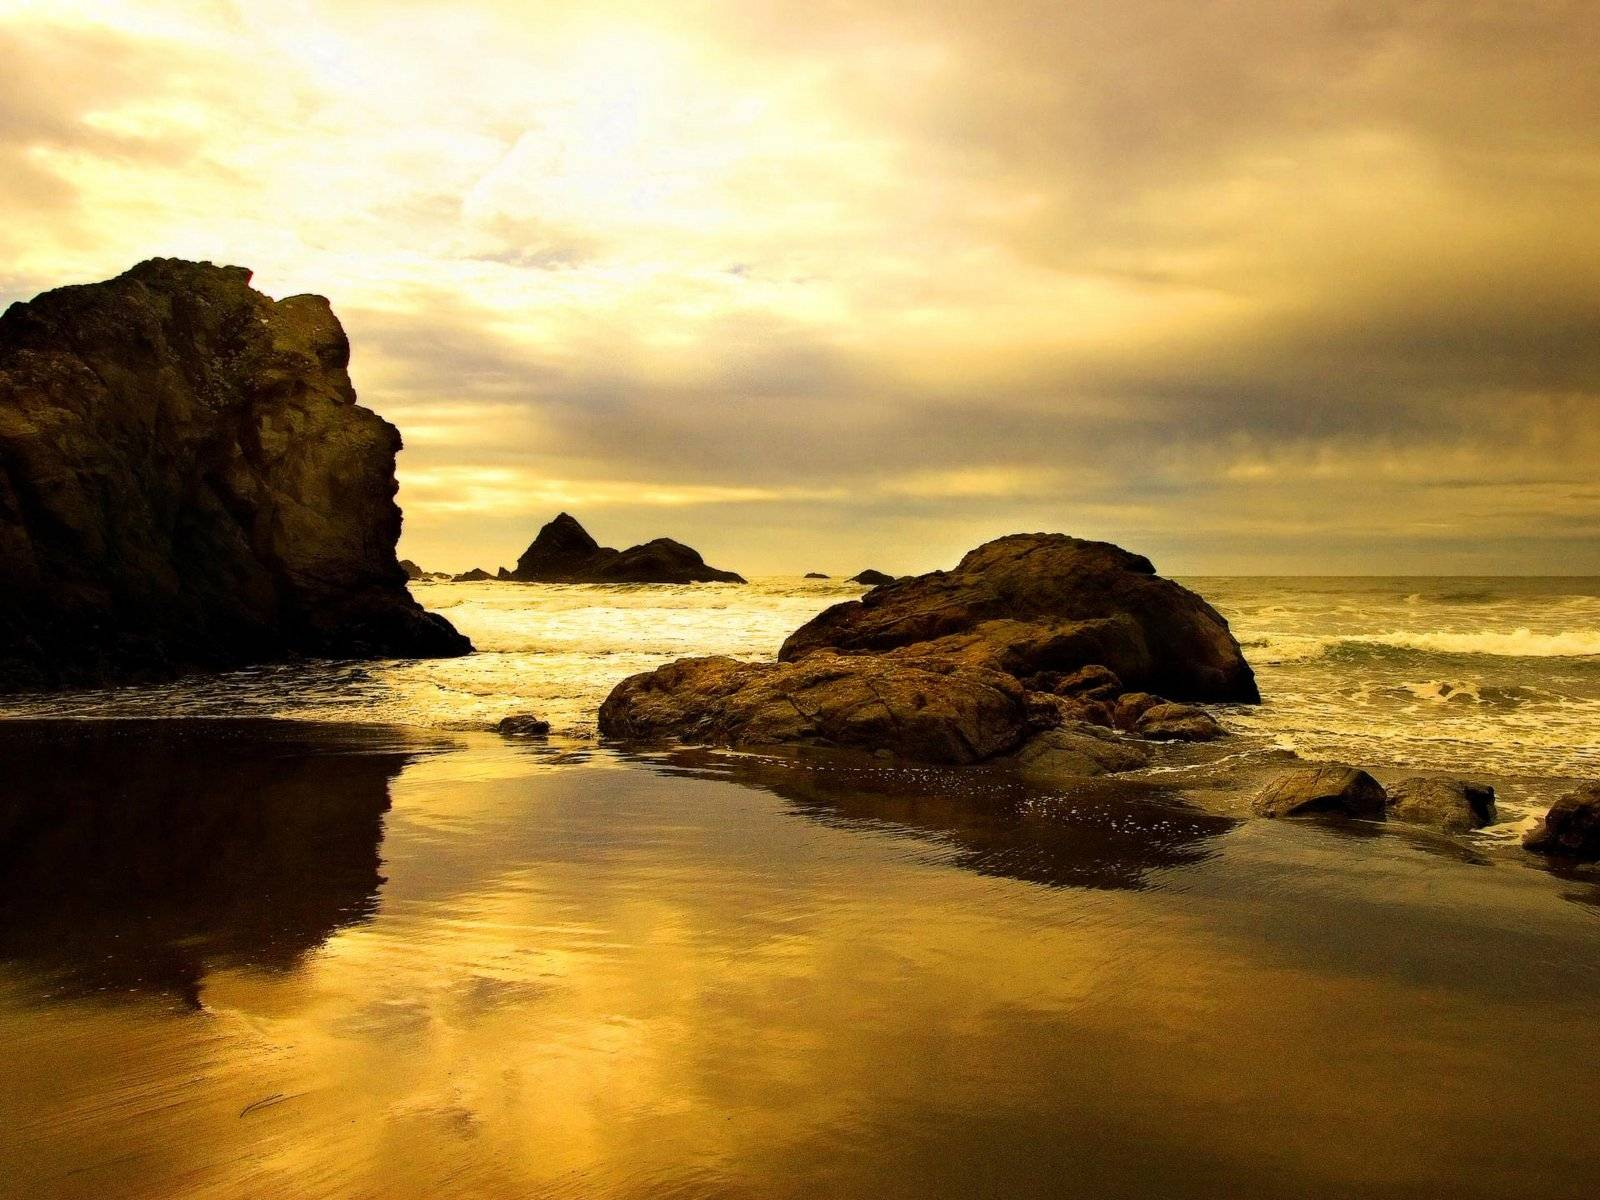 Sunset Wallpaper for Desktop Background Choose your wallpaper and 1600x1200